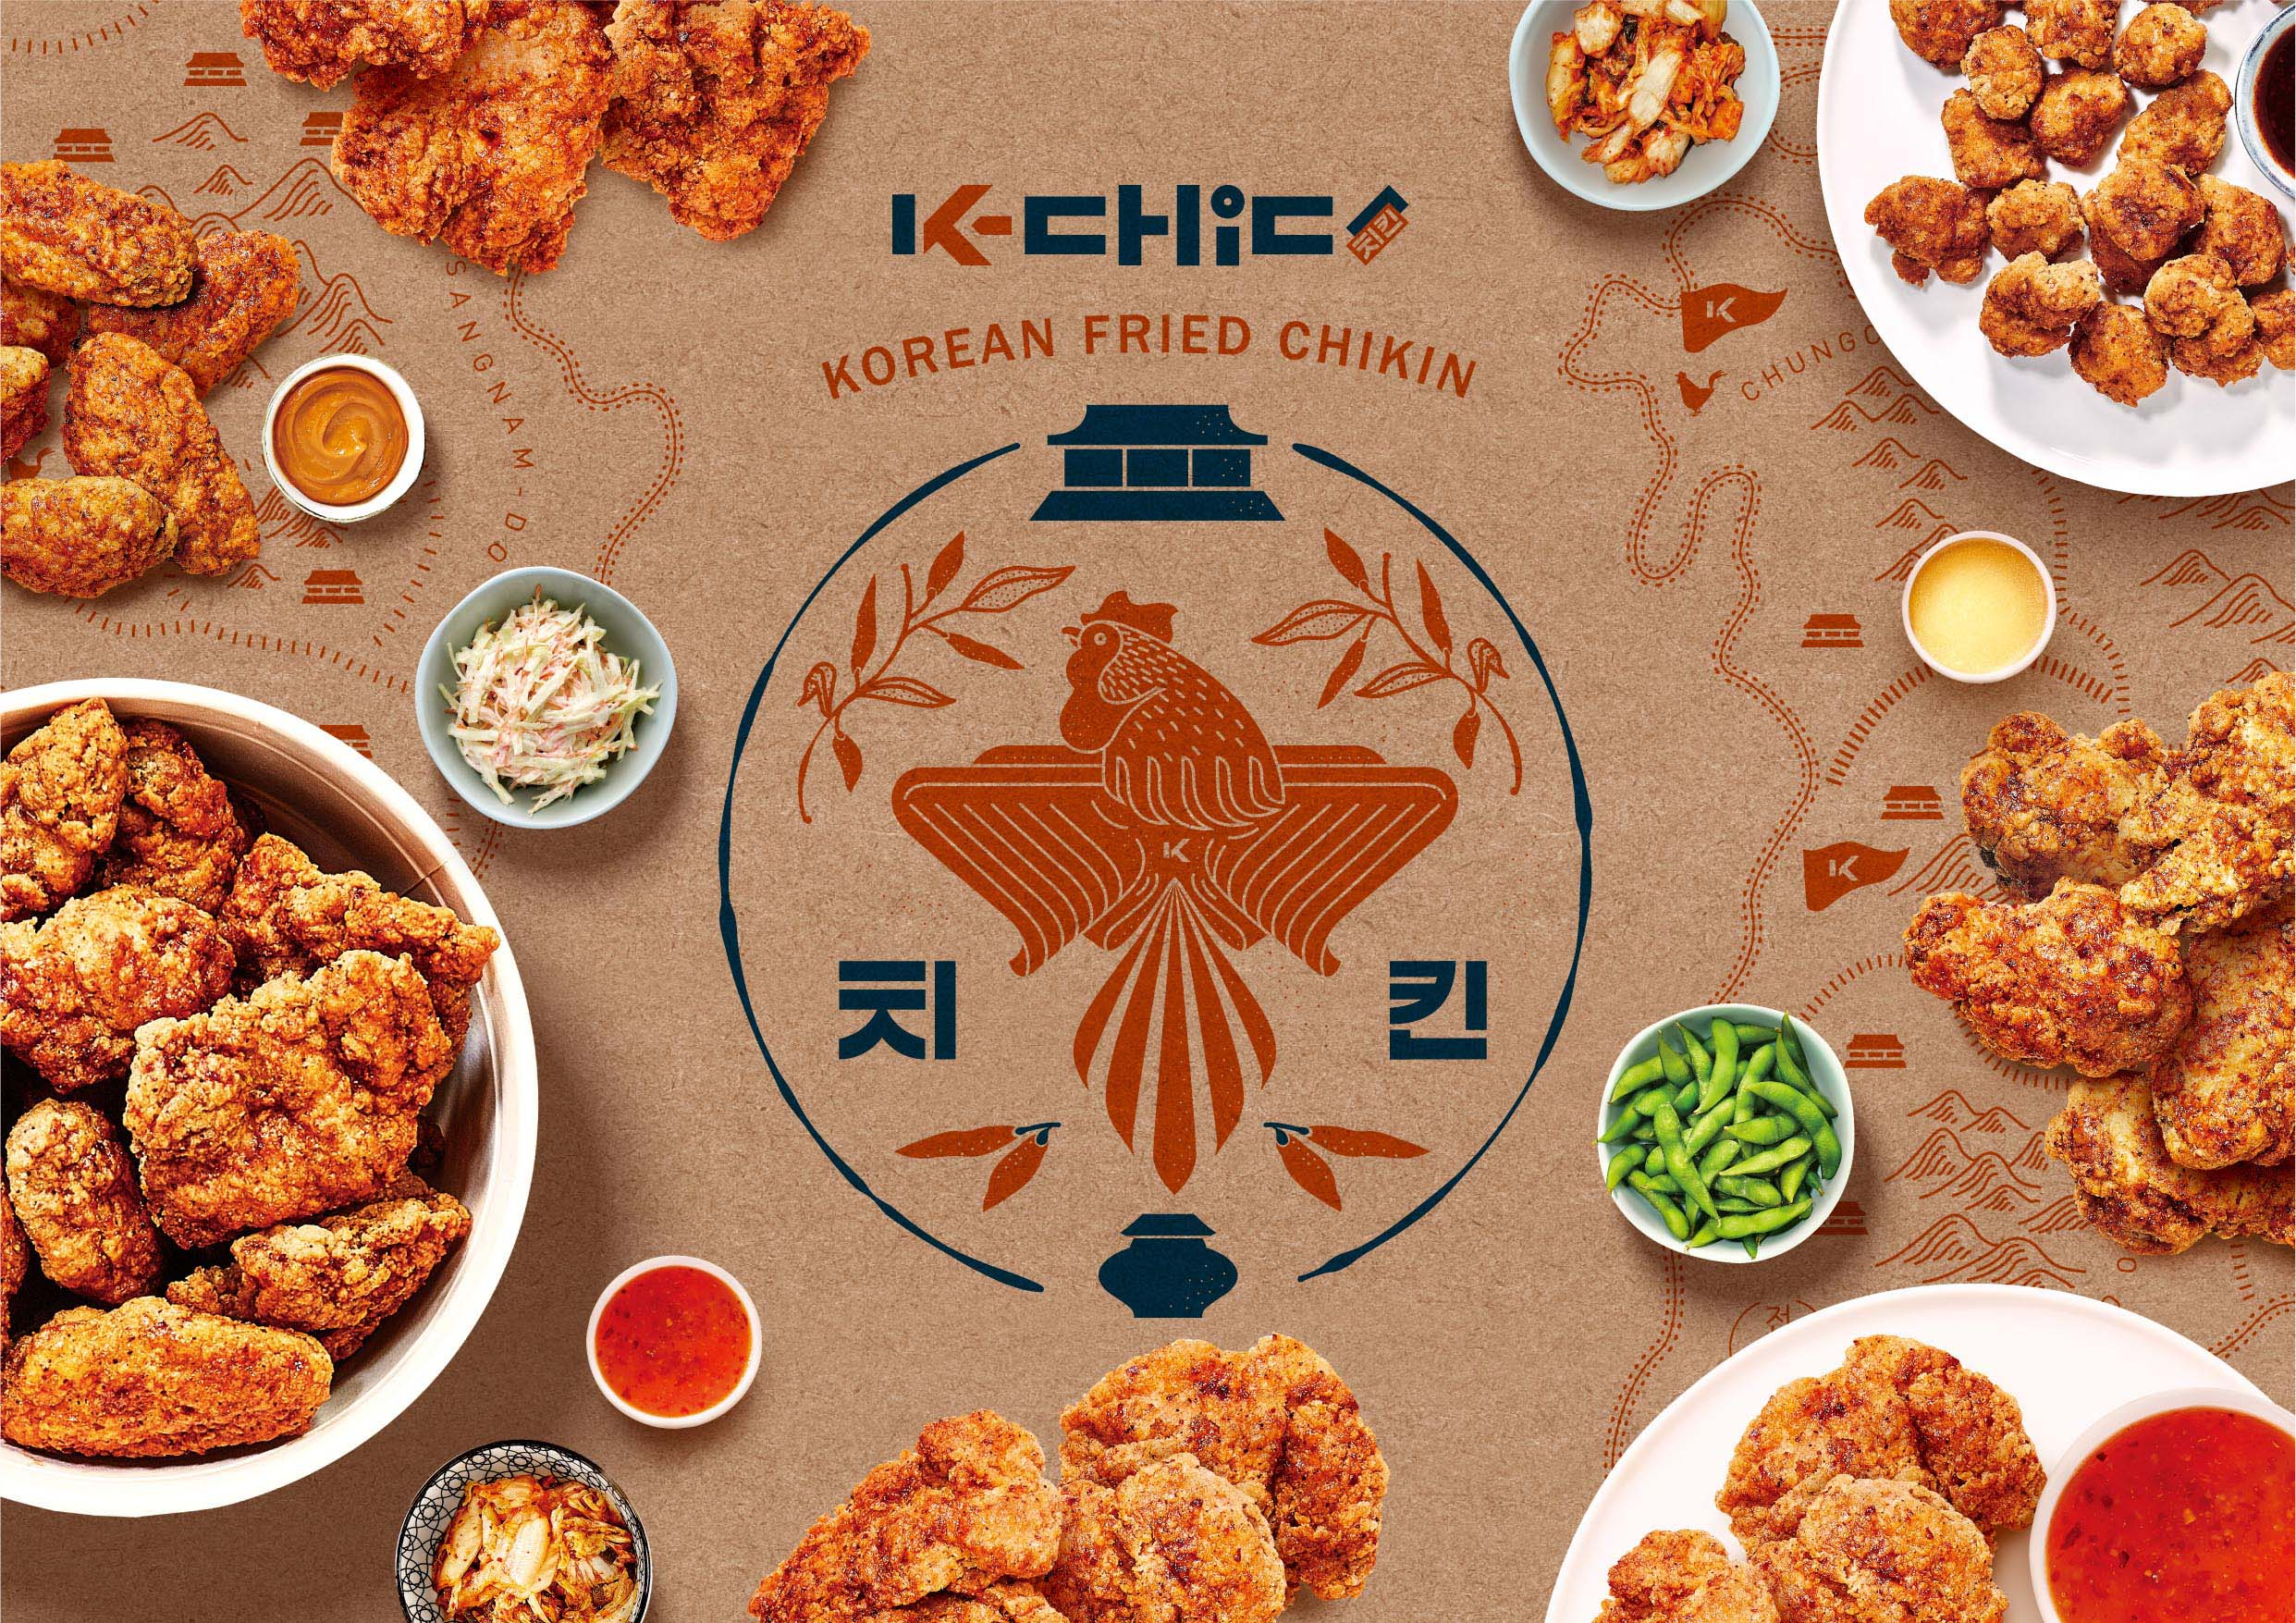 Sump Design Creates K-Chic Korean Fried Chicken Brand and Packaging Design